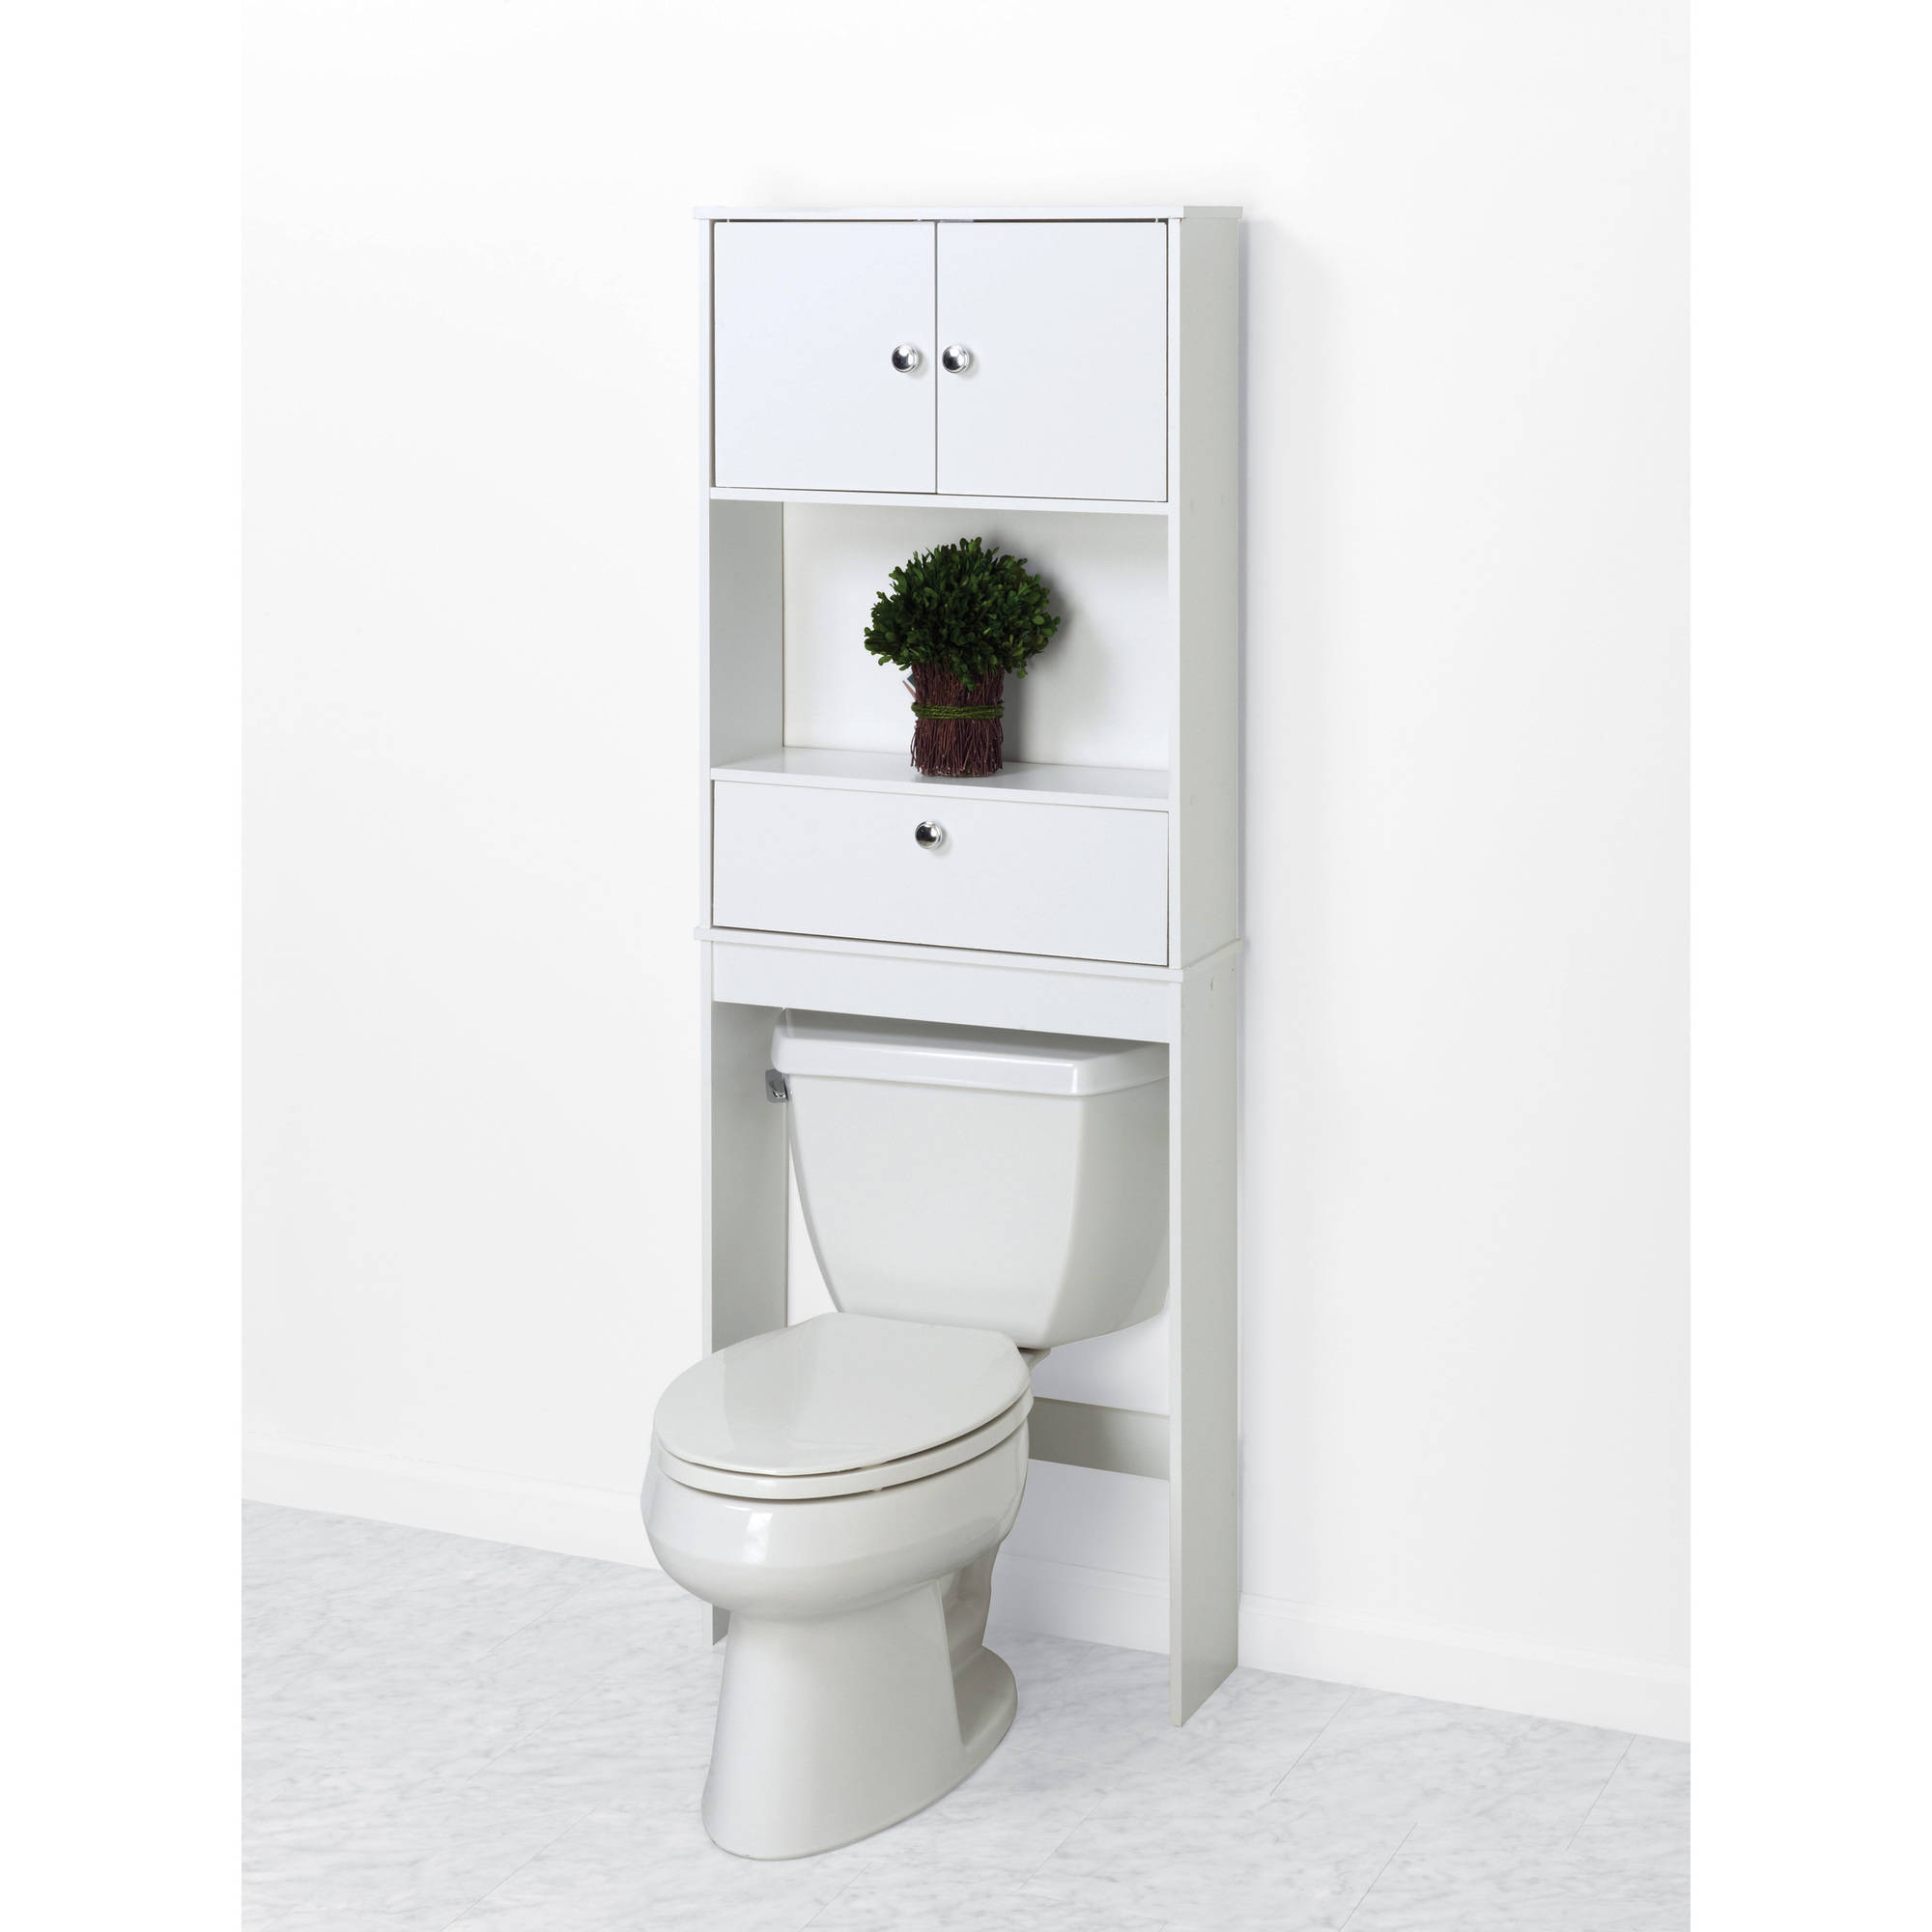 Chapter Bathroom Space Saver, White - Walmart.com